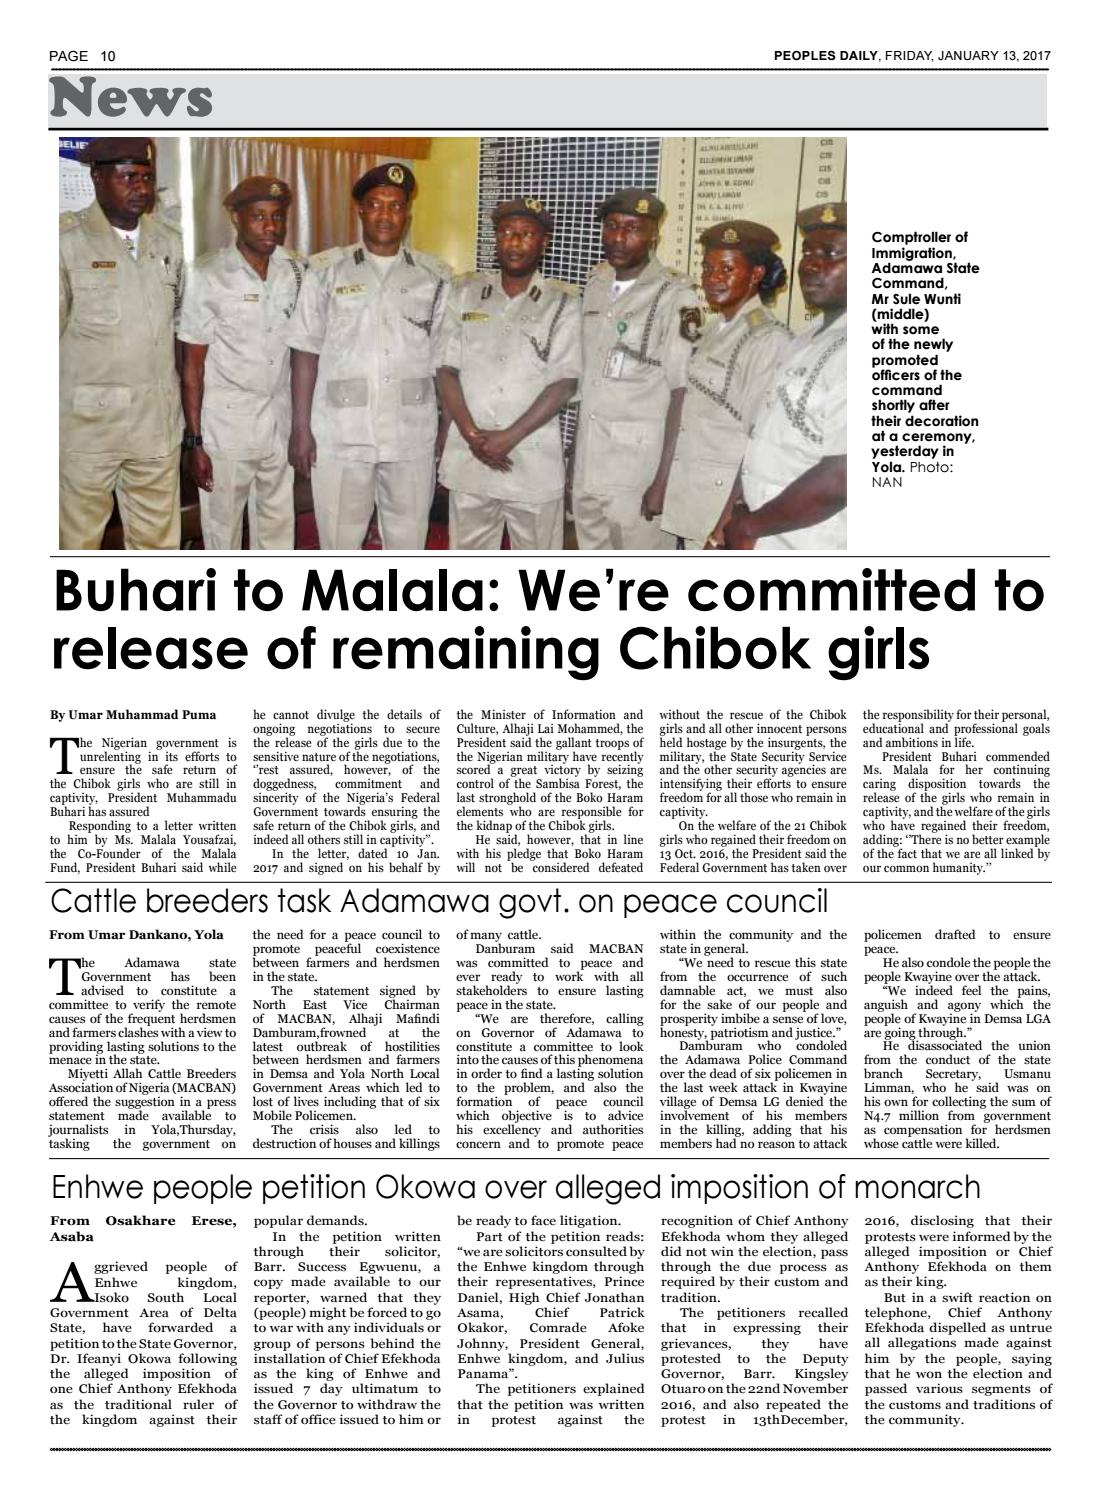 Friday, January 13, 2017 Edition by Peoples Media Limited - issuu